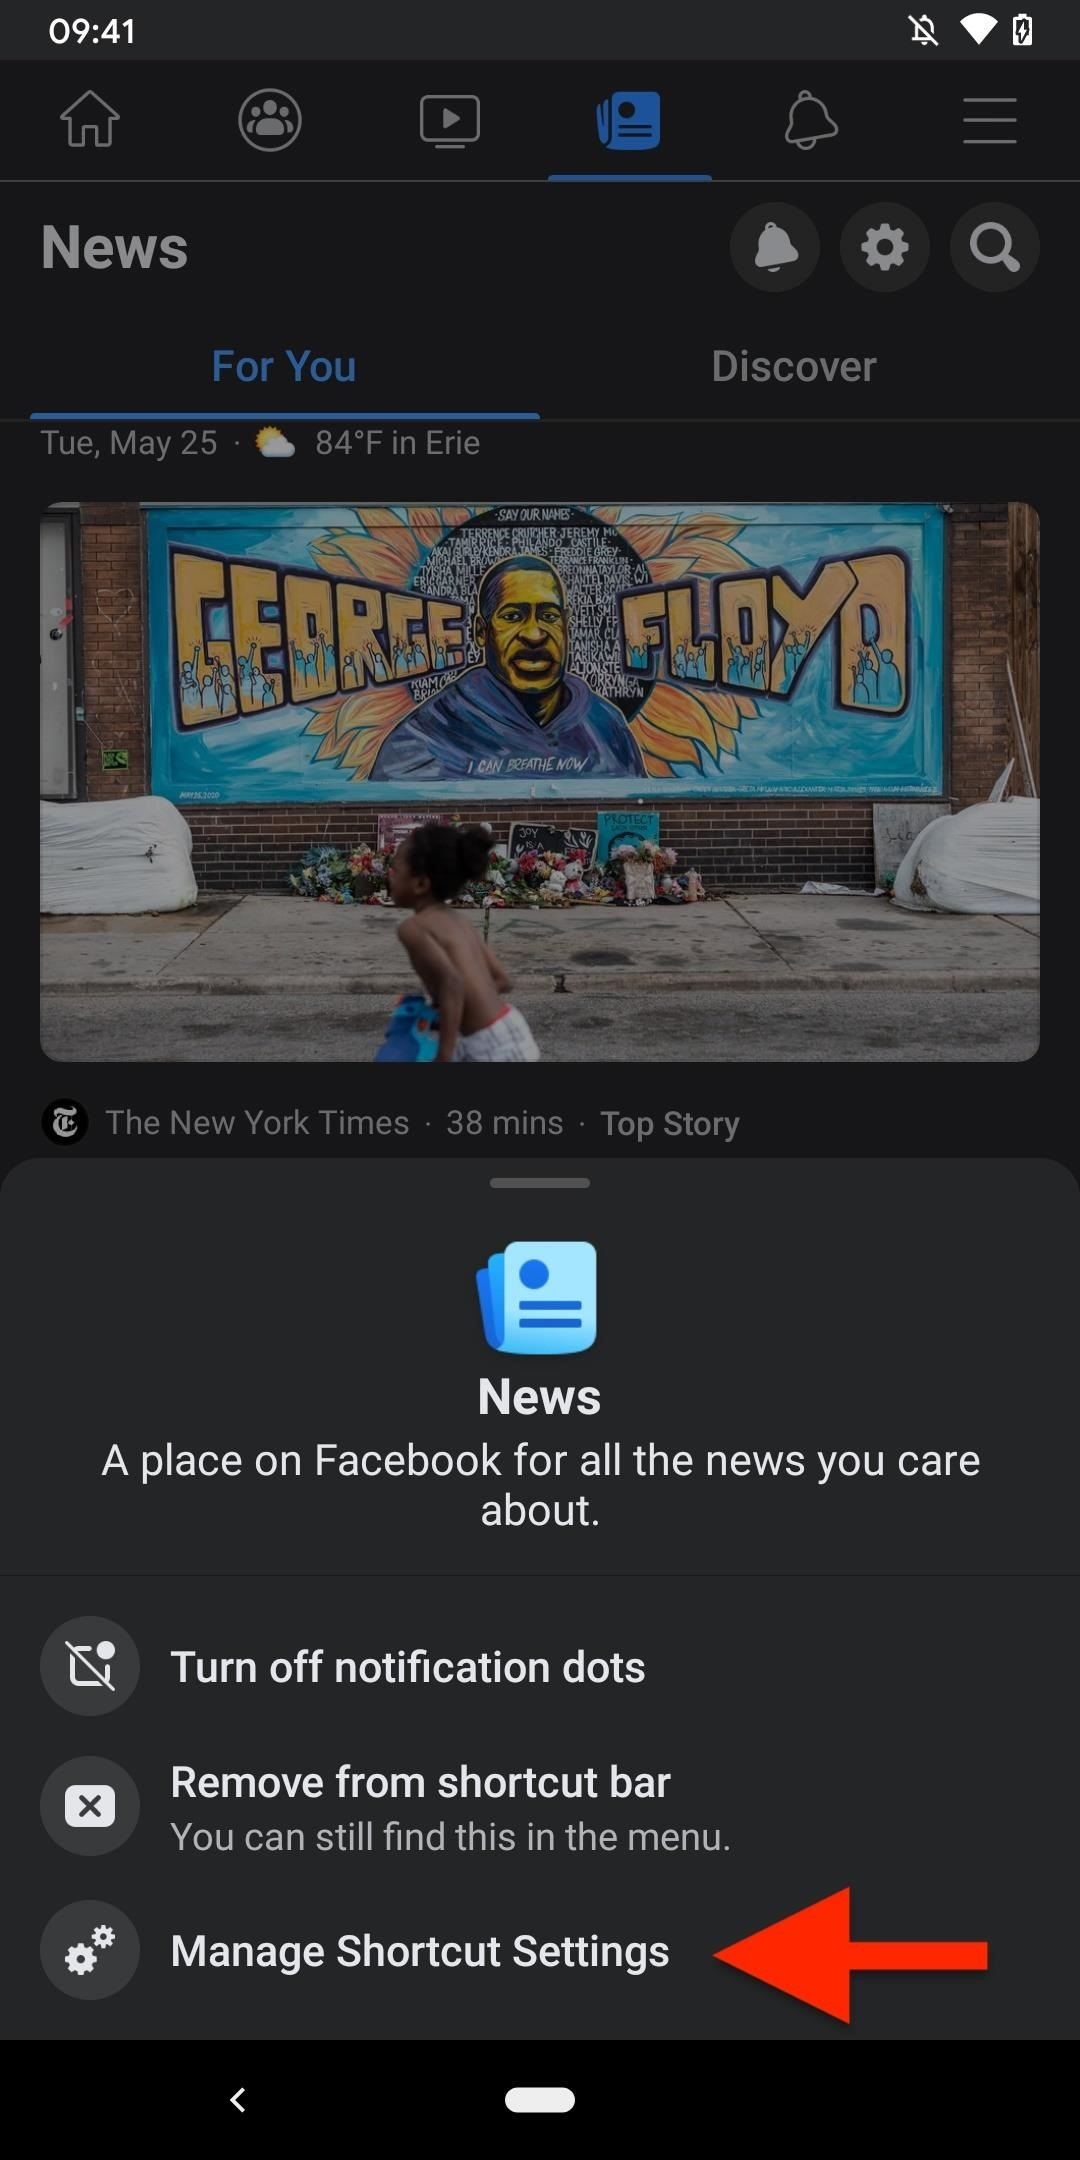 Clean unwanted tabs and alerts from Facebook navigation bar to delete store, groups, news, viewing and notification points